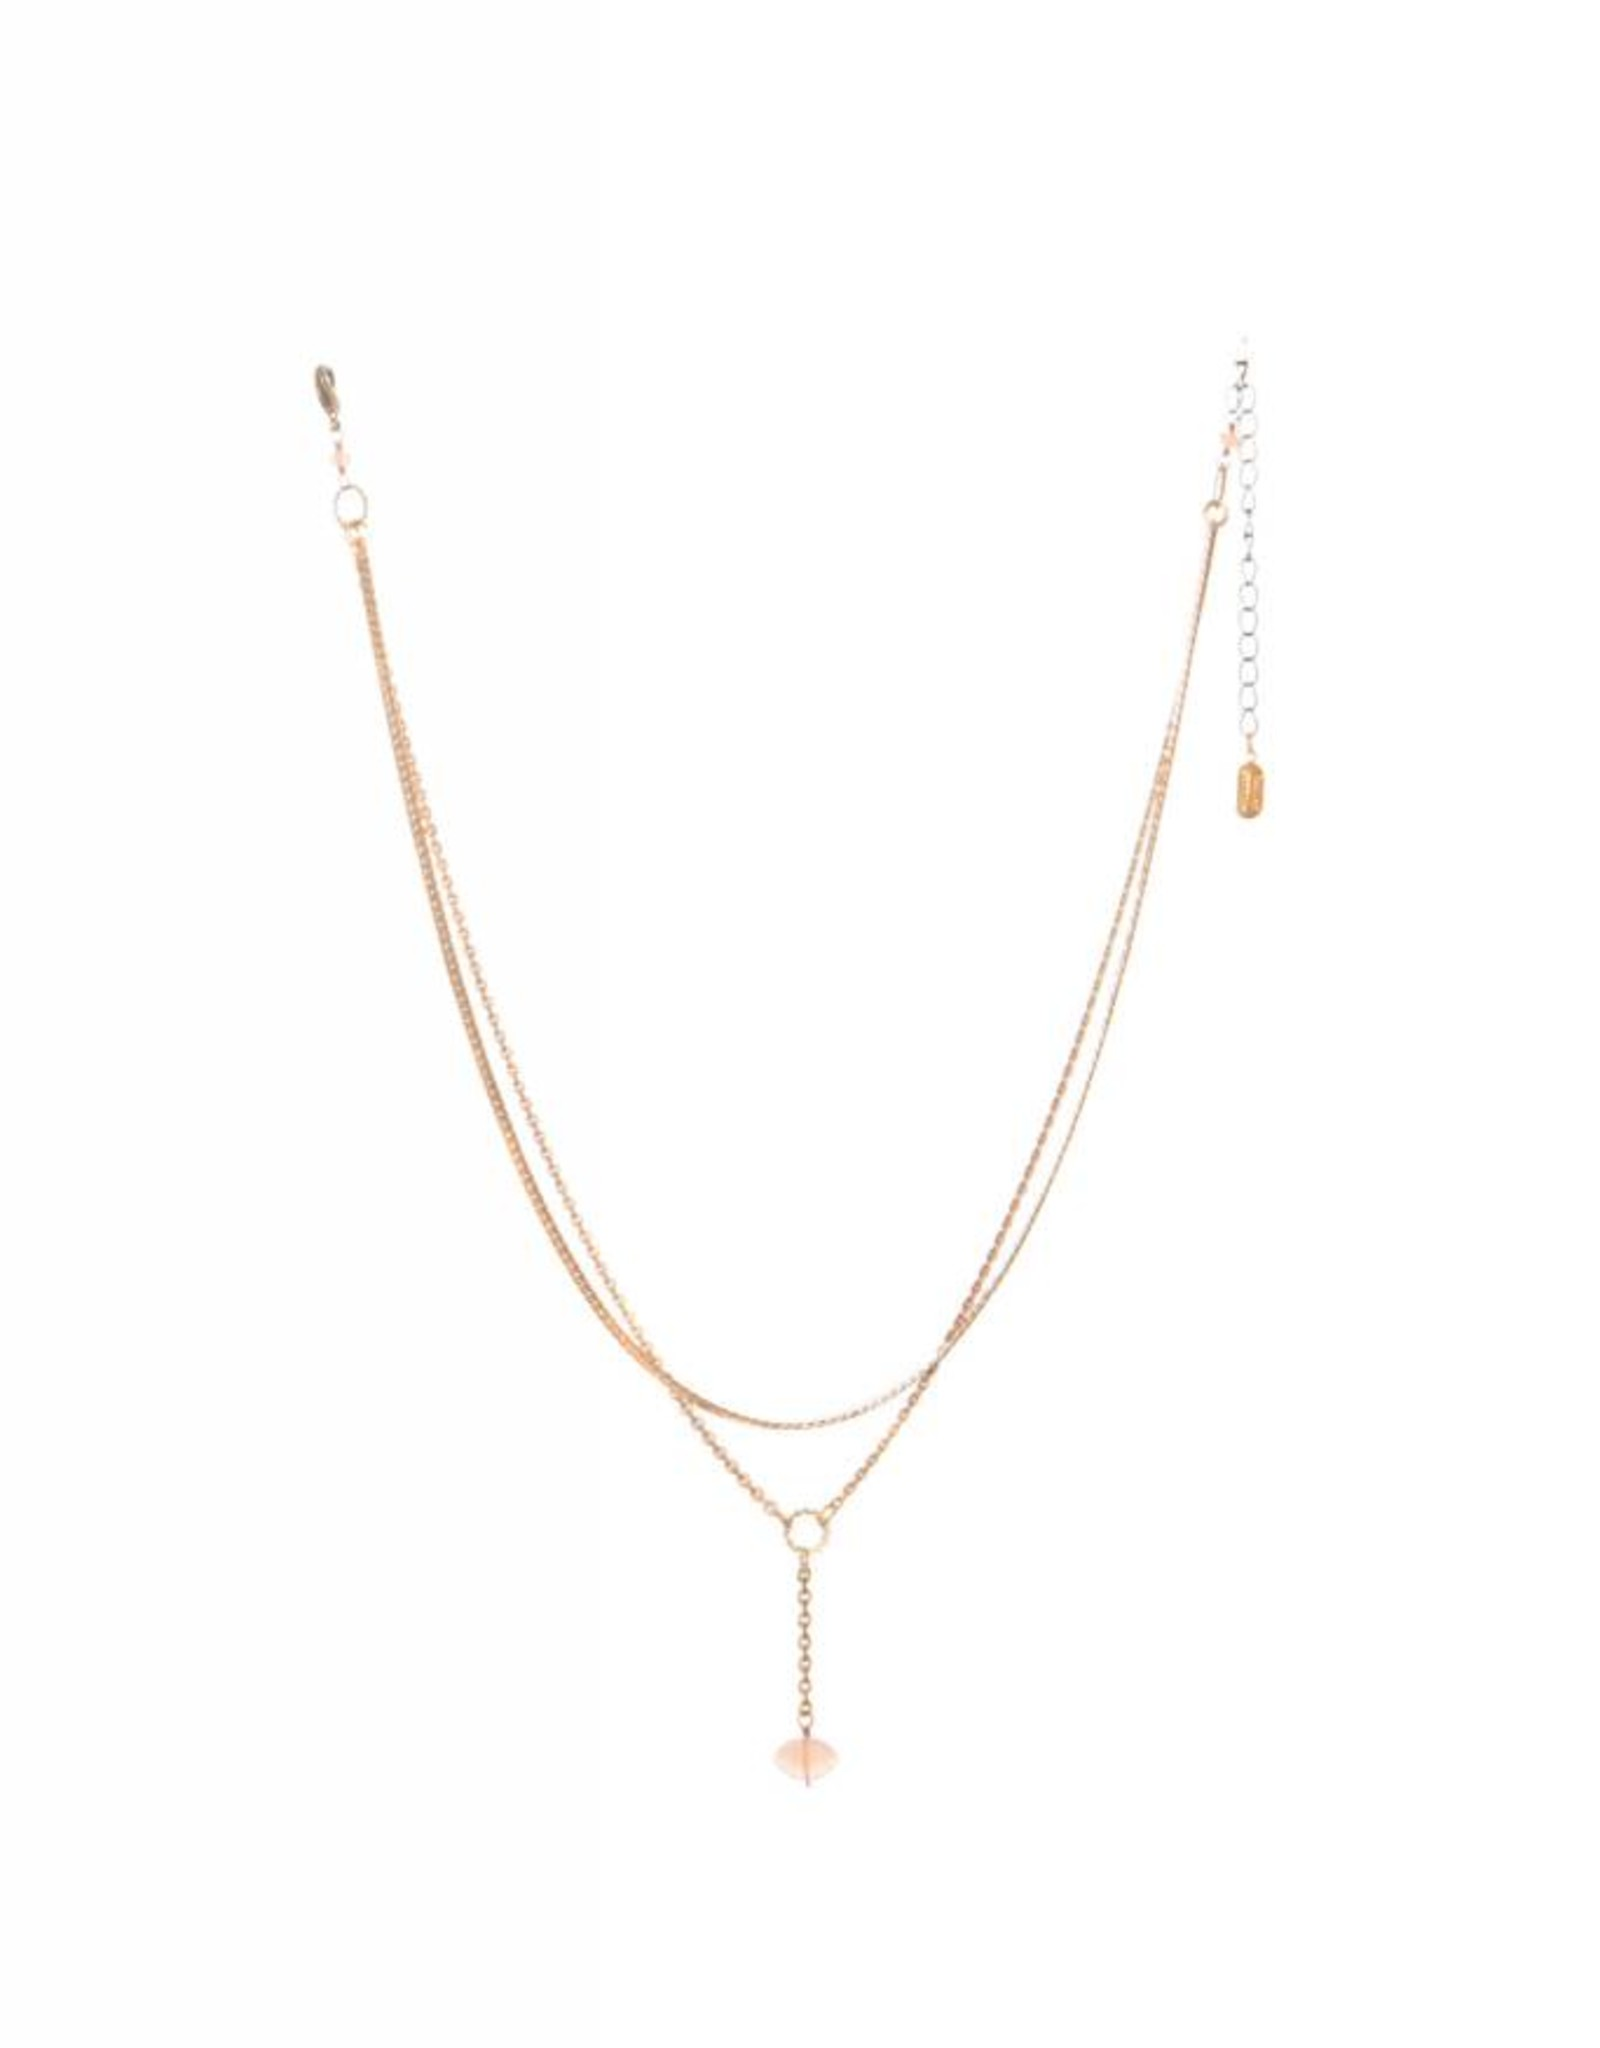 Hailey Gerrits Designs Meri Necklace - Peach Moonstone